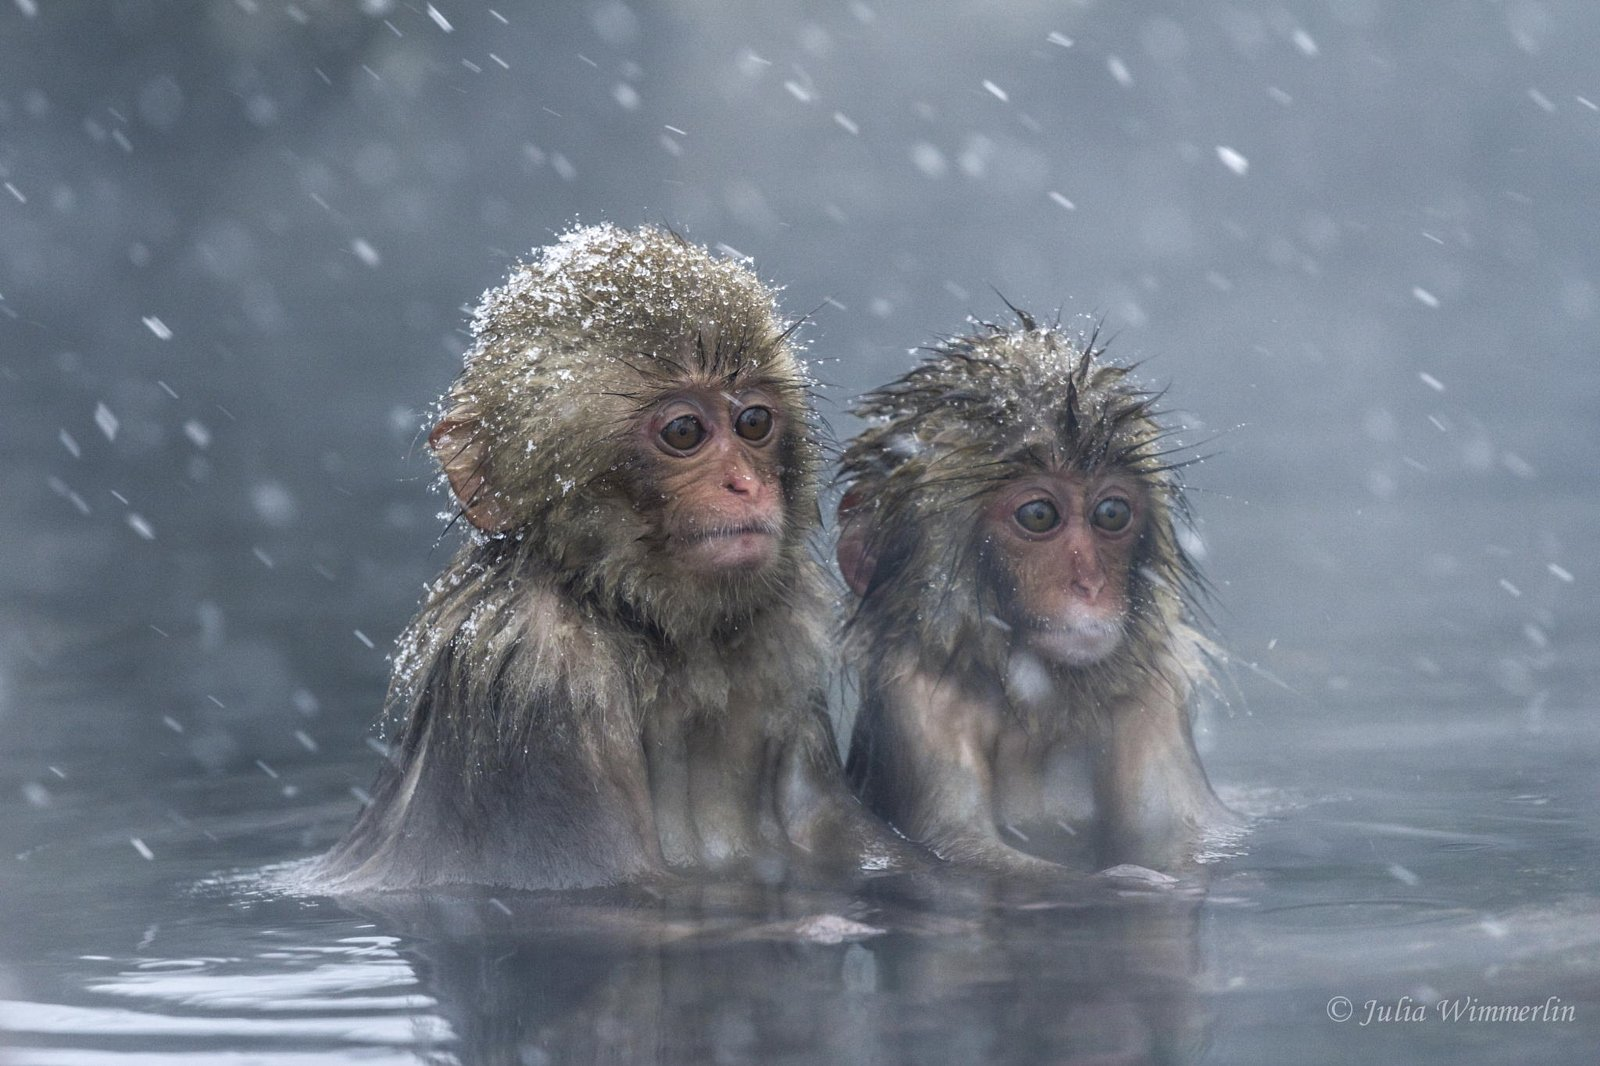 This Zoo In Japan Killed 57 Snow Monkeys By Lethal Injection - photo#34